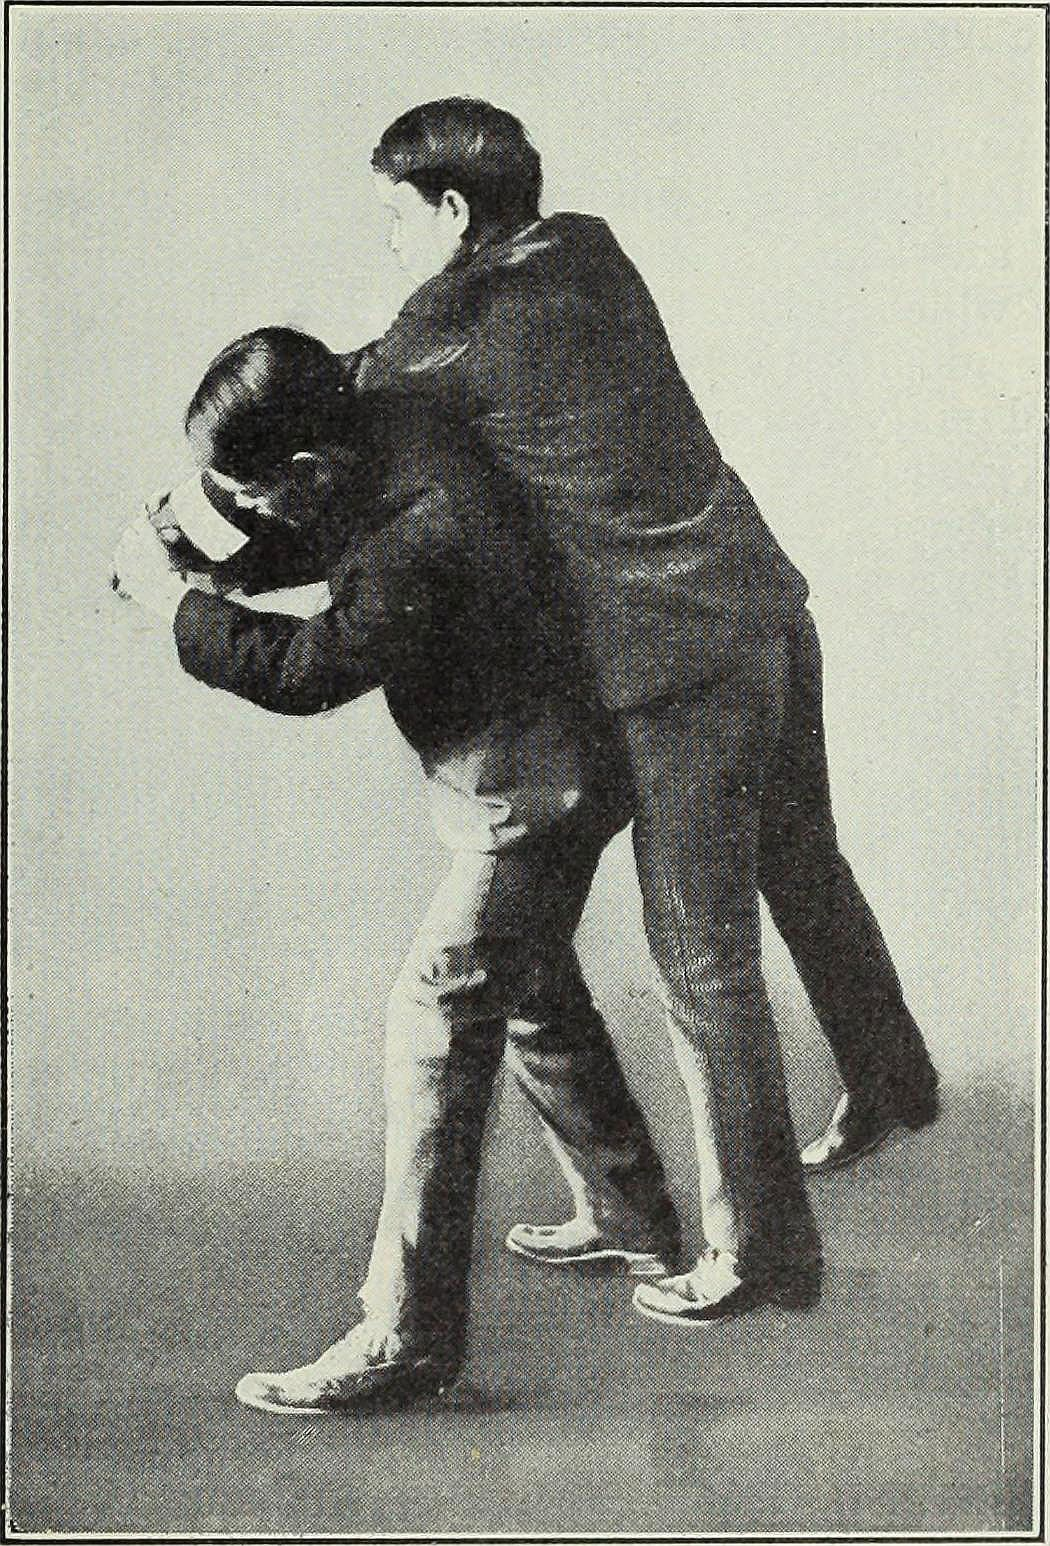 sports-martial arts-jiu-jitsu-interet archive----Image from page 216 of Review of reviews and world's work (1890) 14766515805